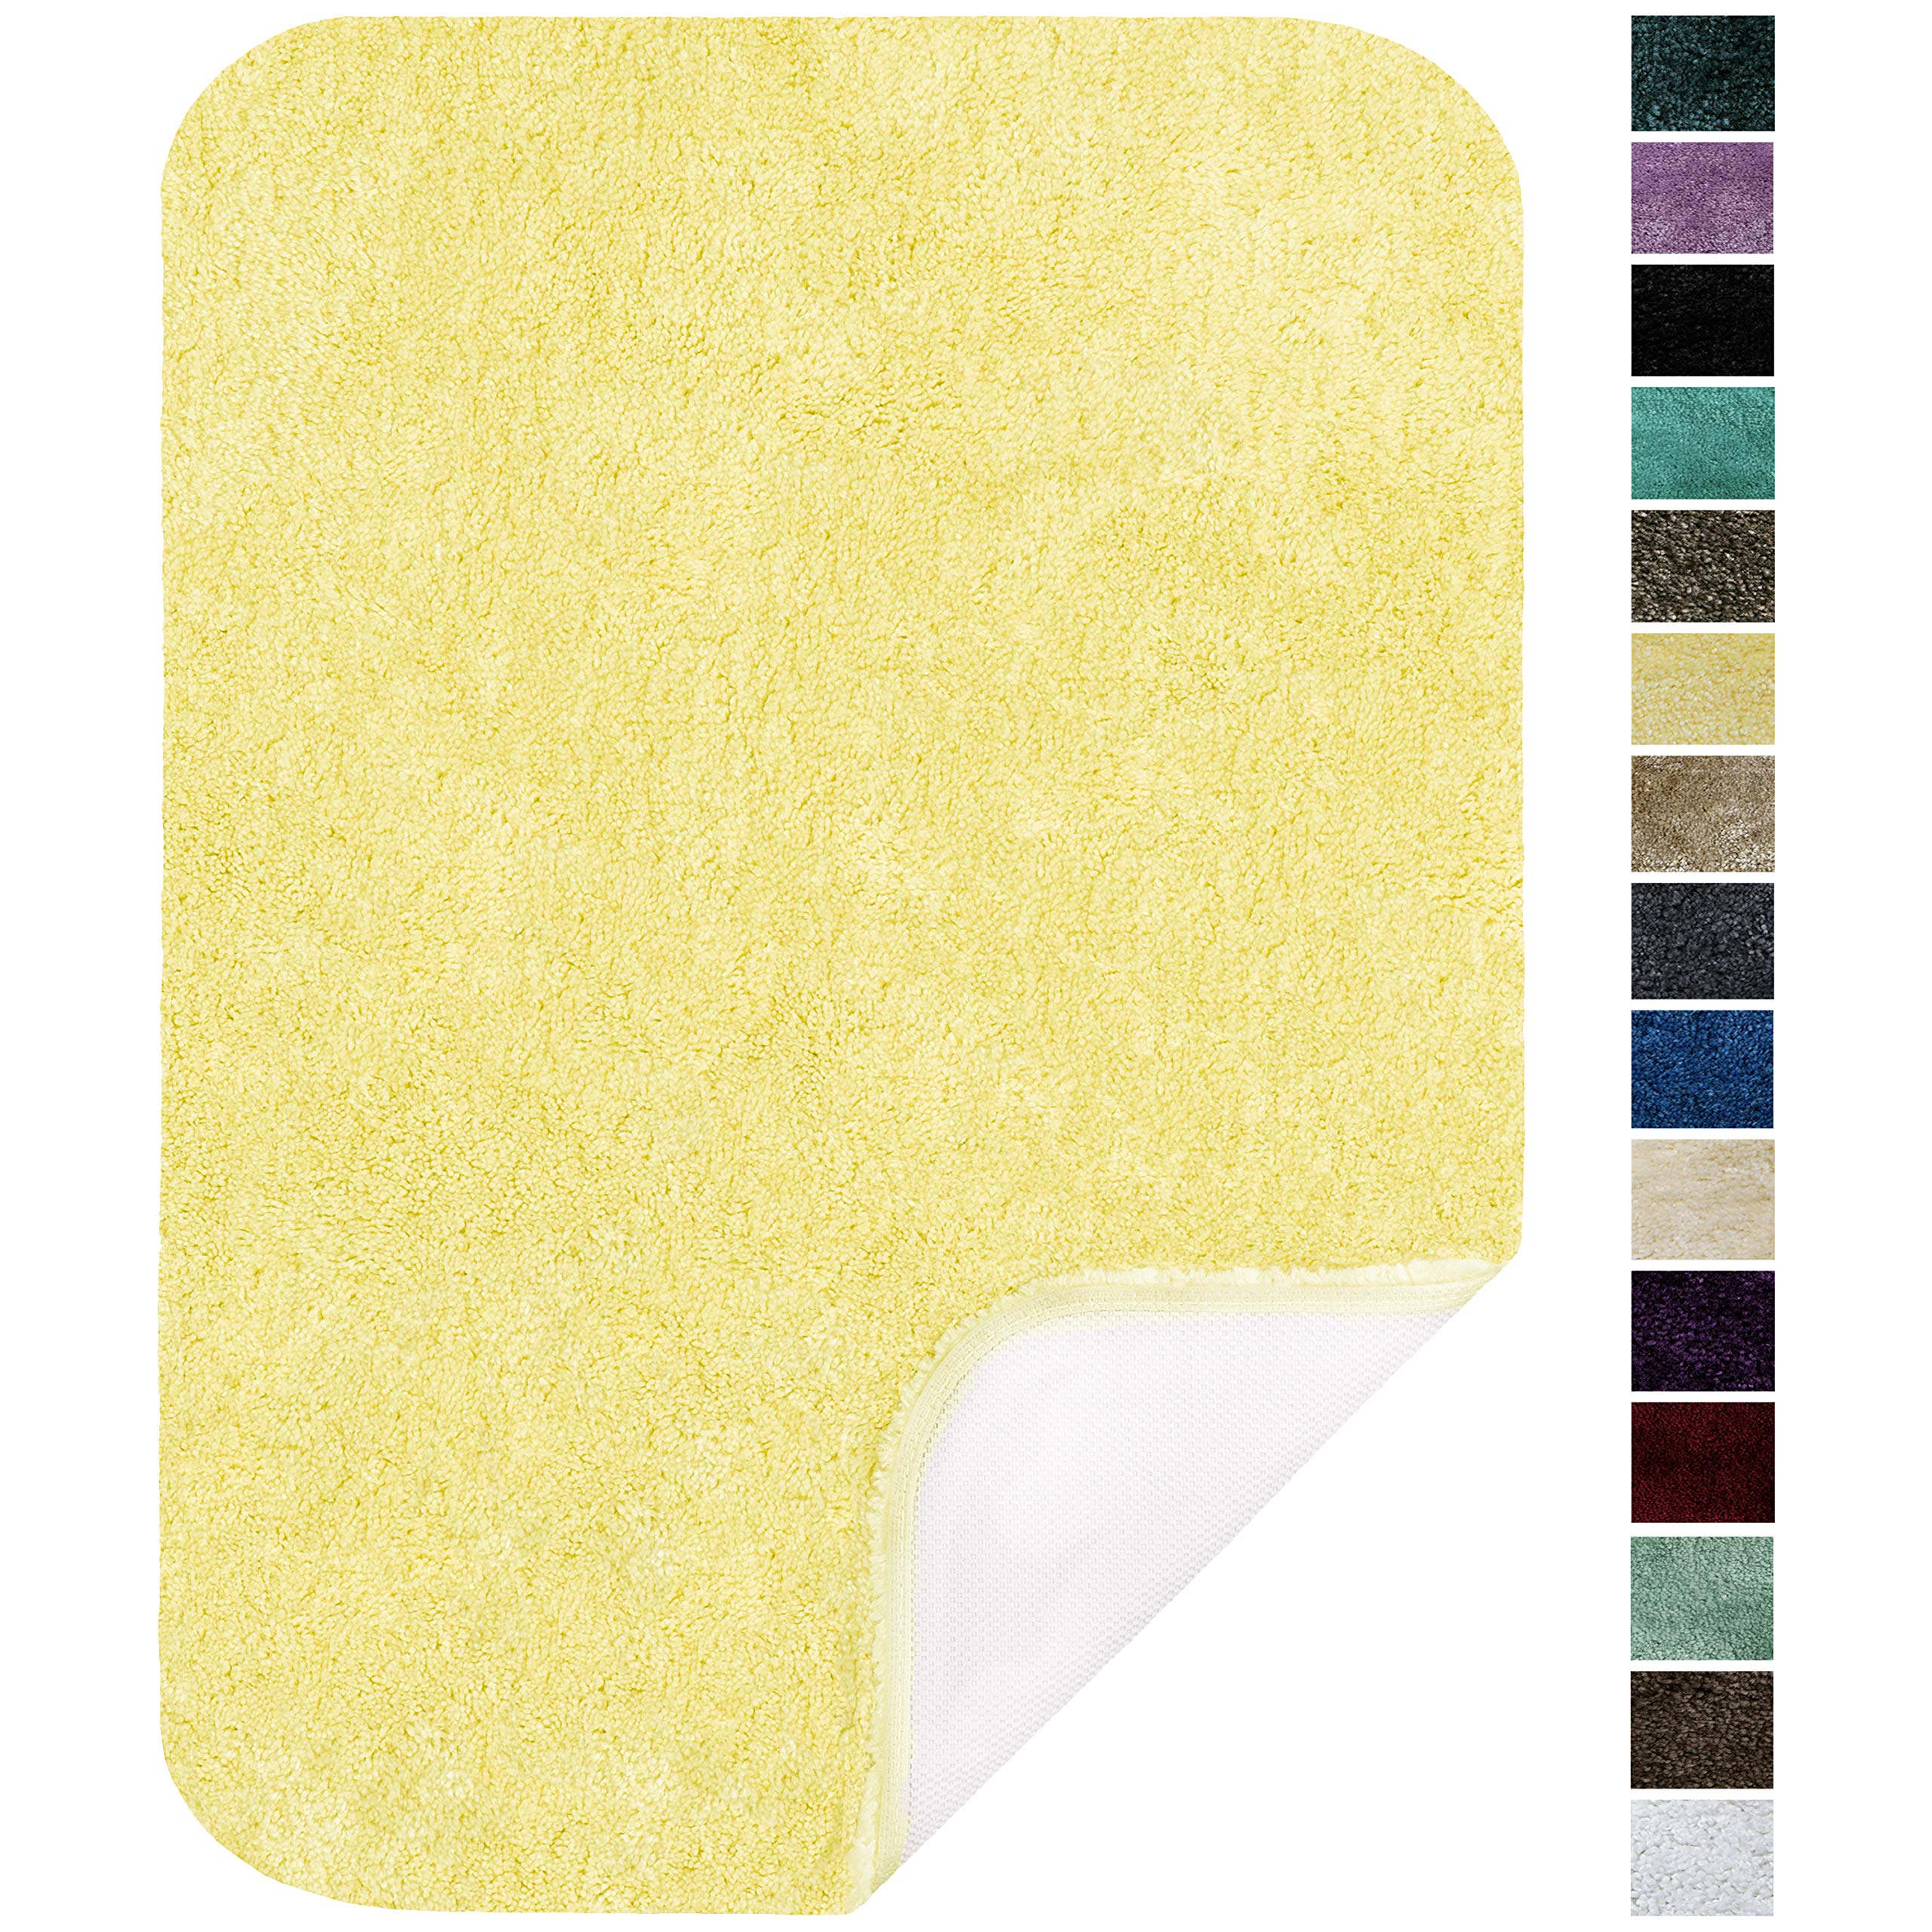 Maples Rugs Bathroom Rugs - Colorsoft 20'' x 34'' Non Slip Washable Bath Mat [Made in USA} Soft & Quick Dry for Vanity and Shower Lemon Ice